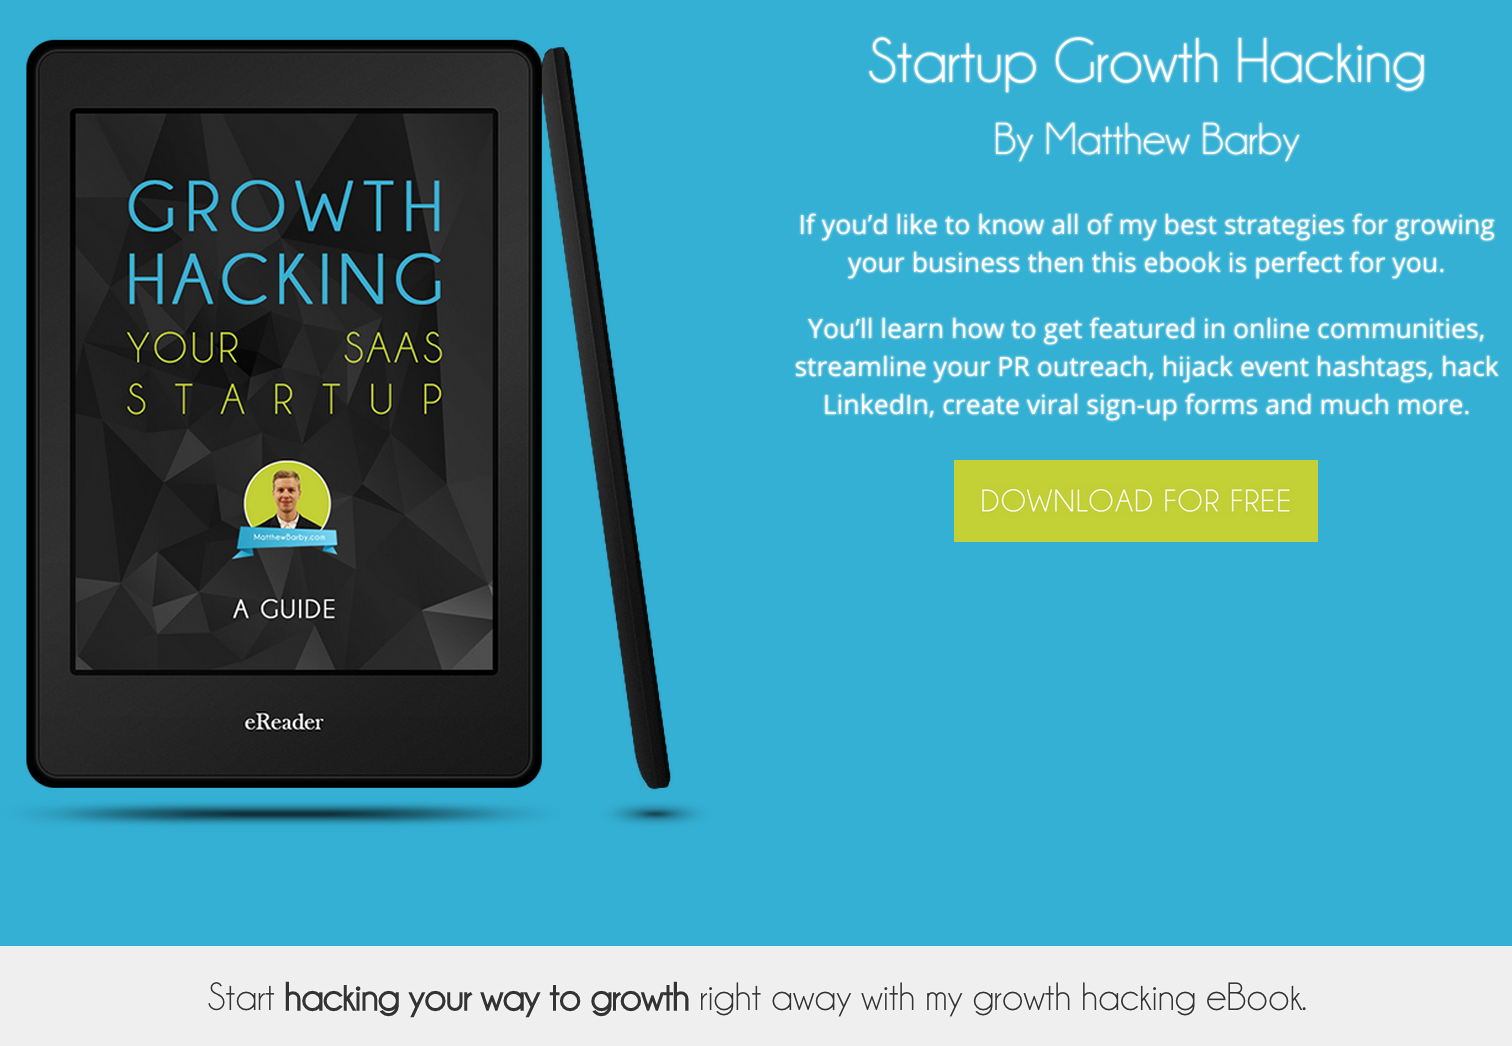 My growth hacking ebook landing page